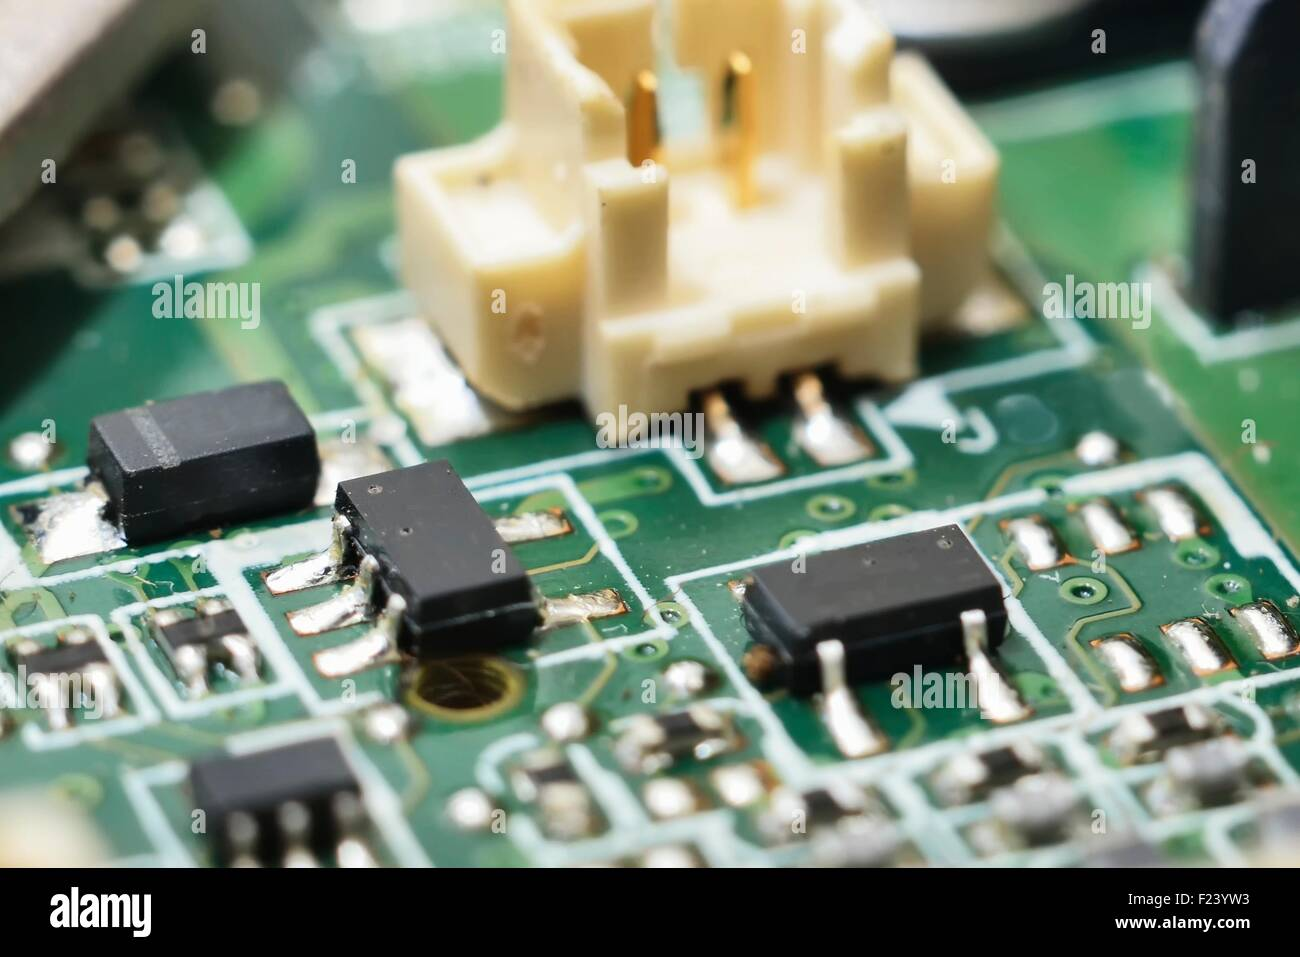 Printed Circuit Board Assembly Stock Photos Engineering And Manufacturing Pcb Image